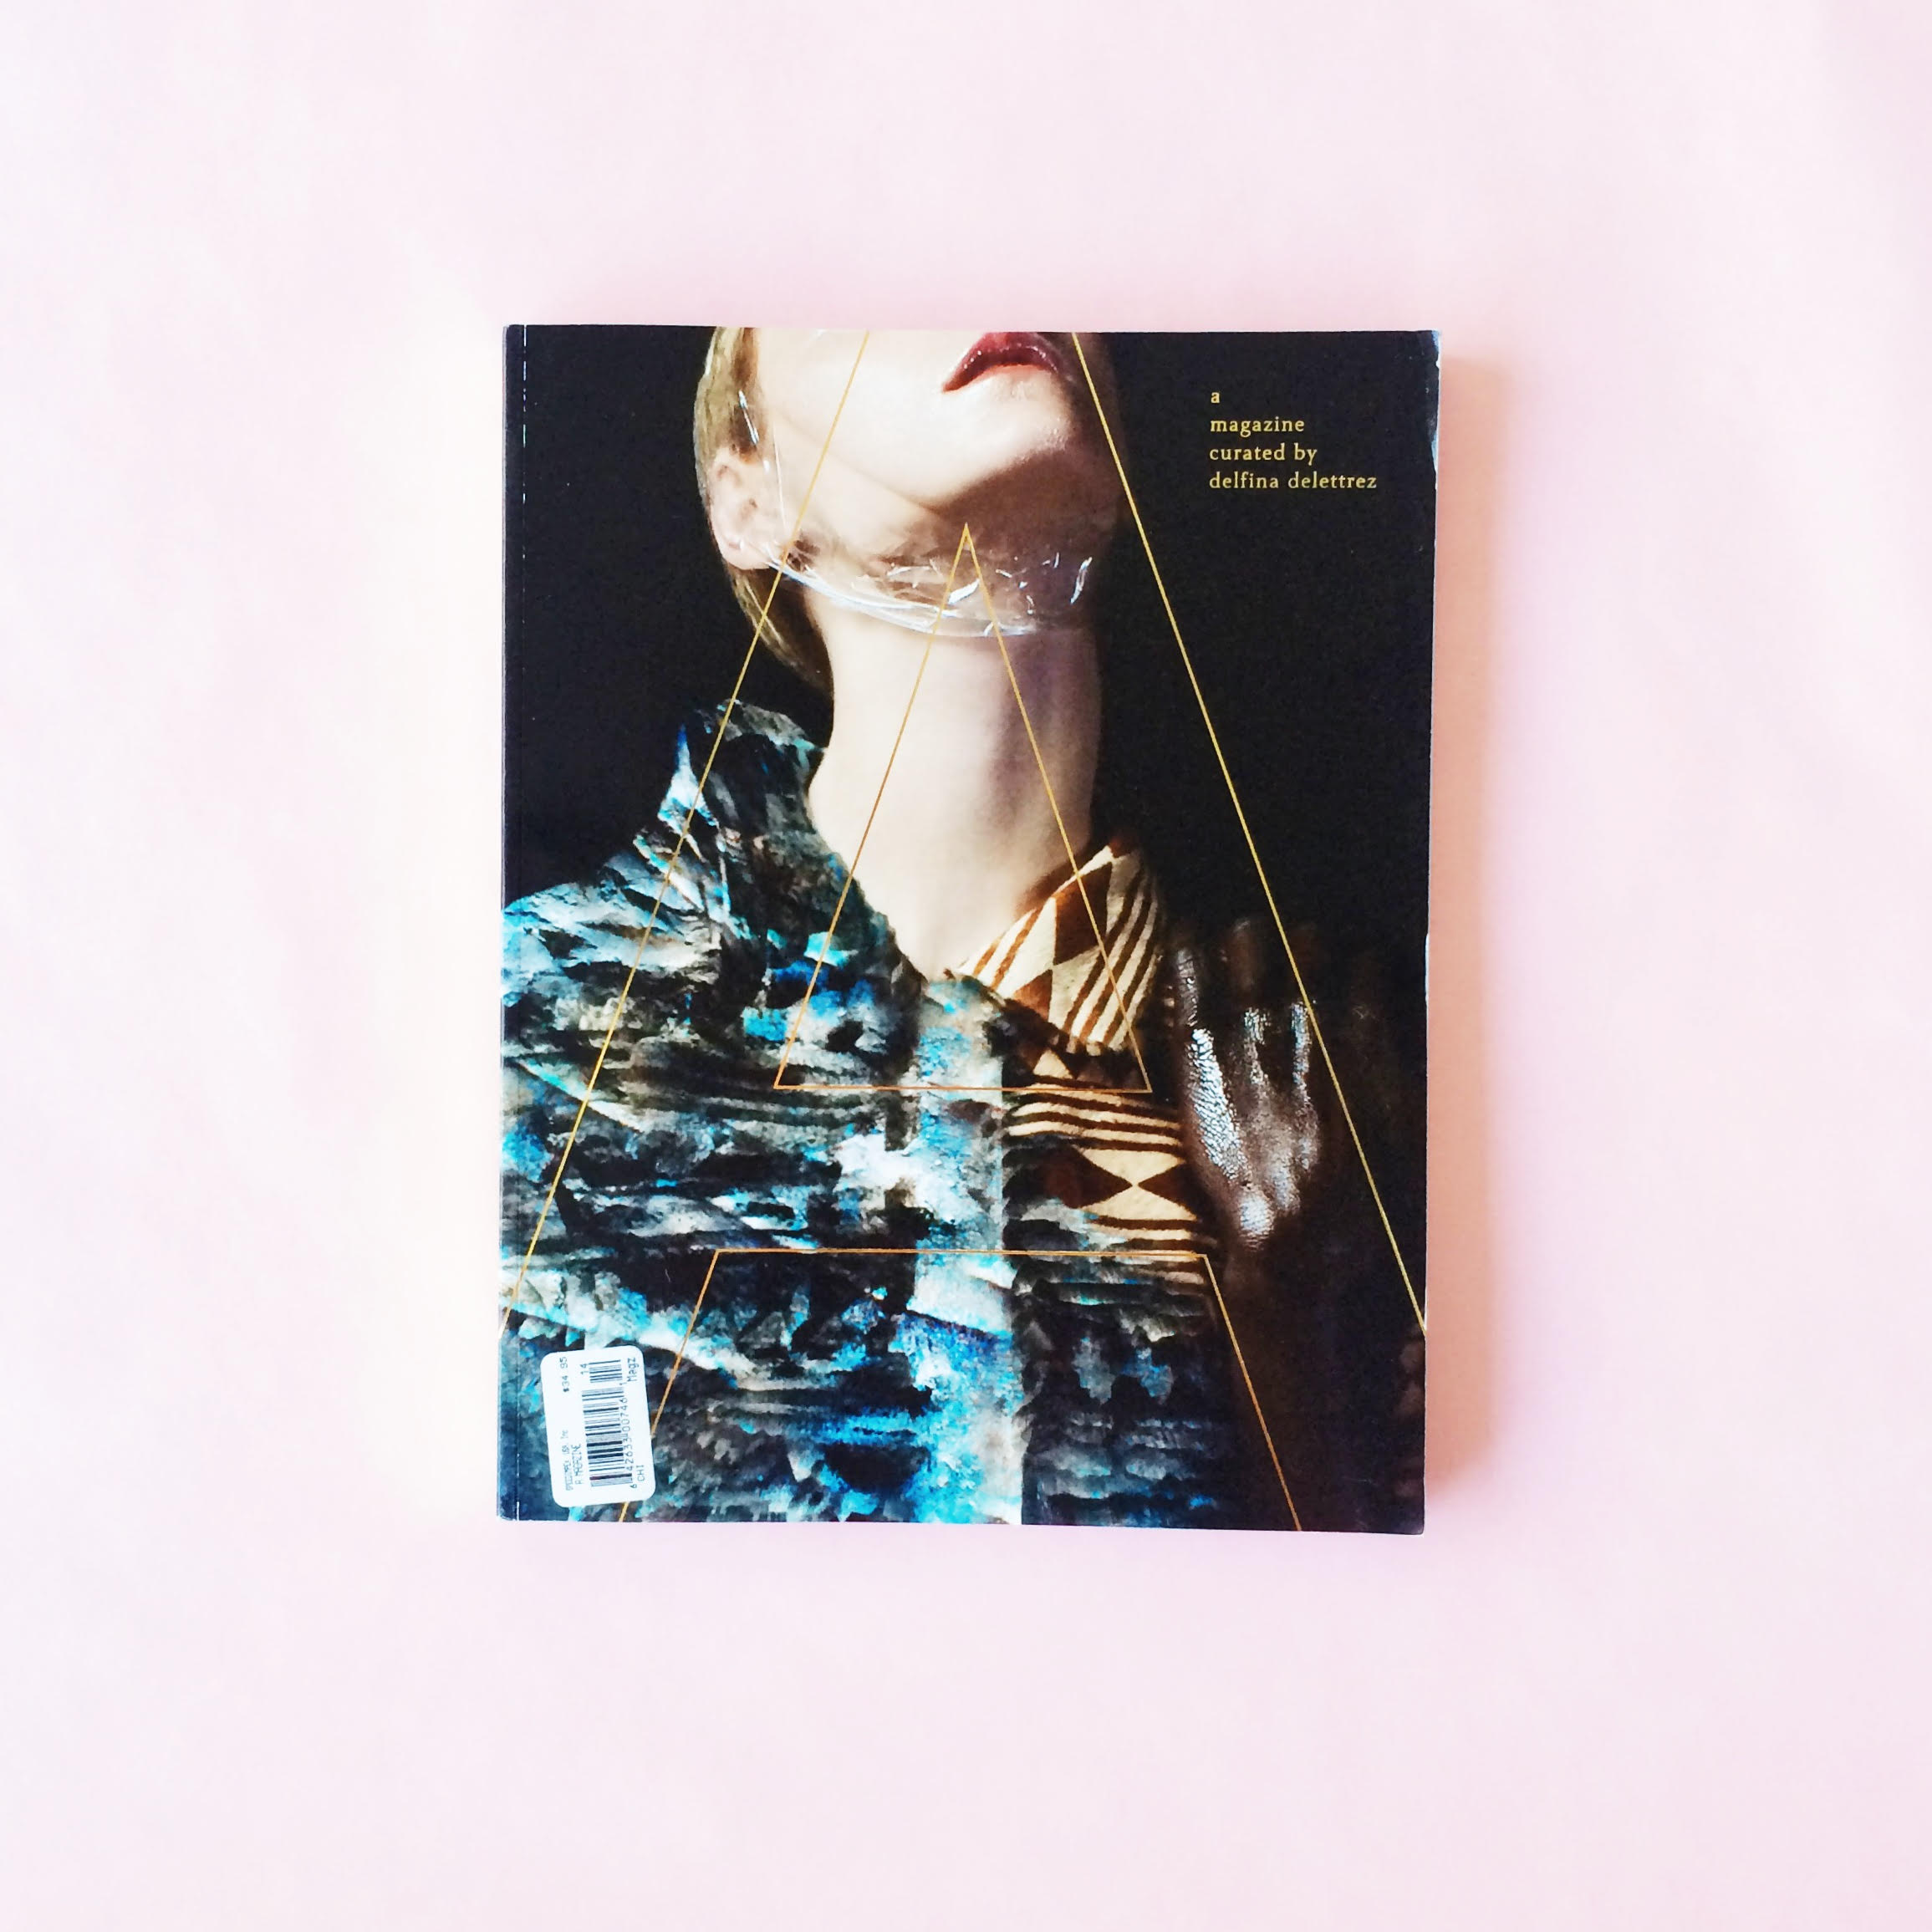 Bodega LTD - A Magazine Curated By